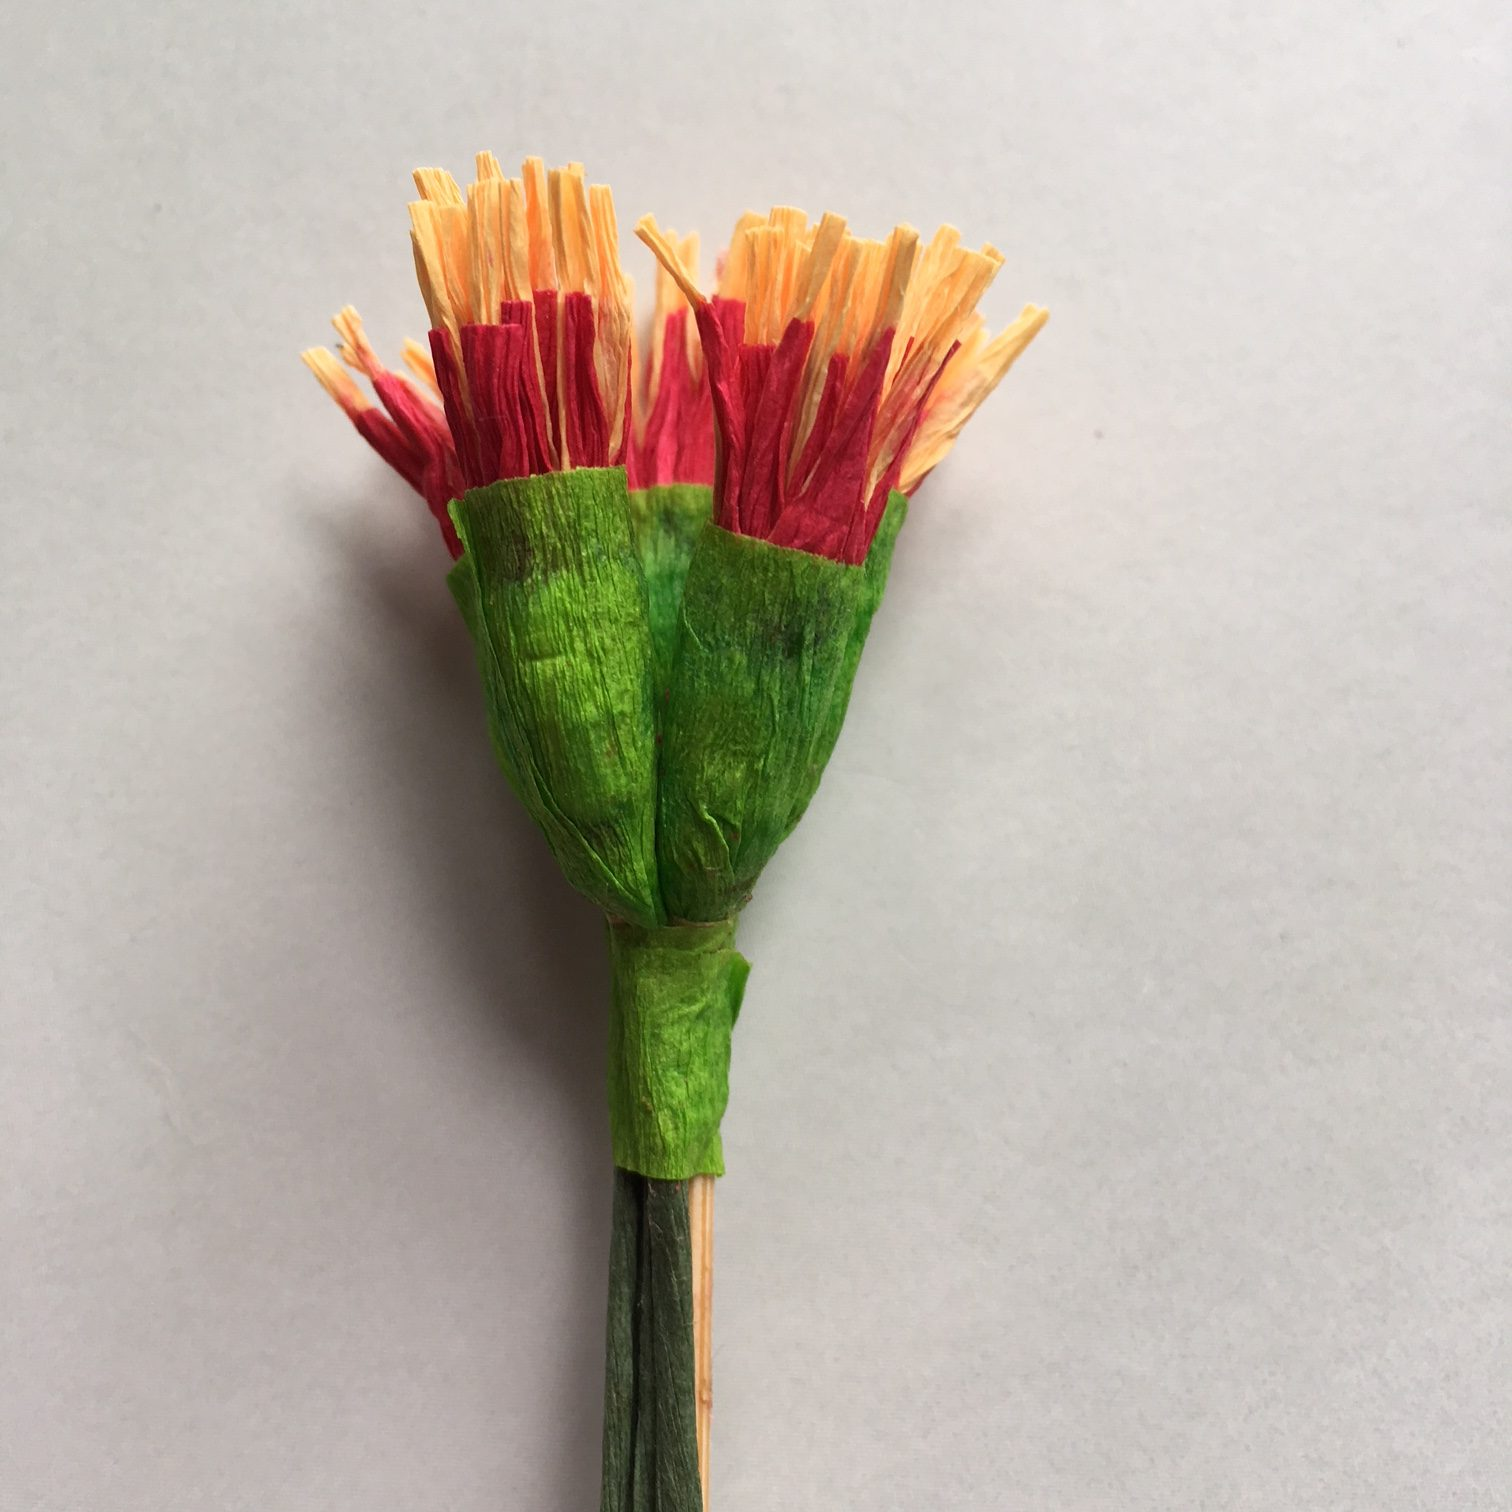 5 stamen heads of crepe paper Poinsettia glued together